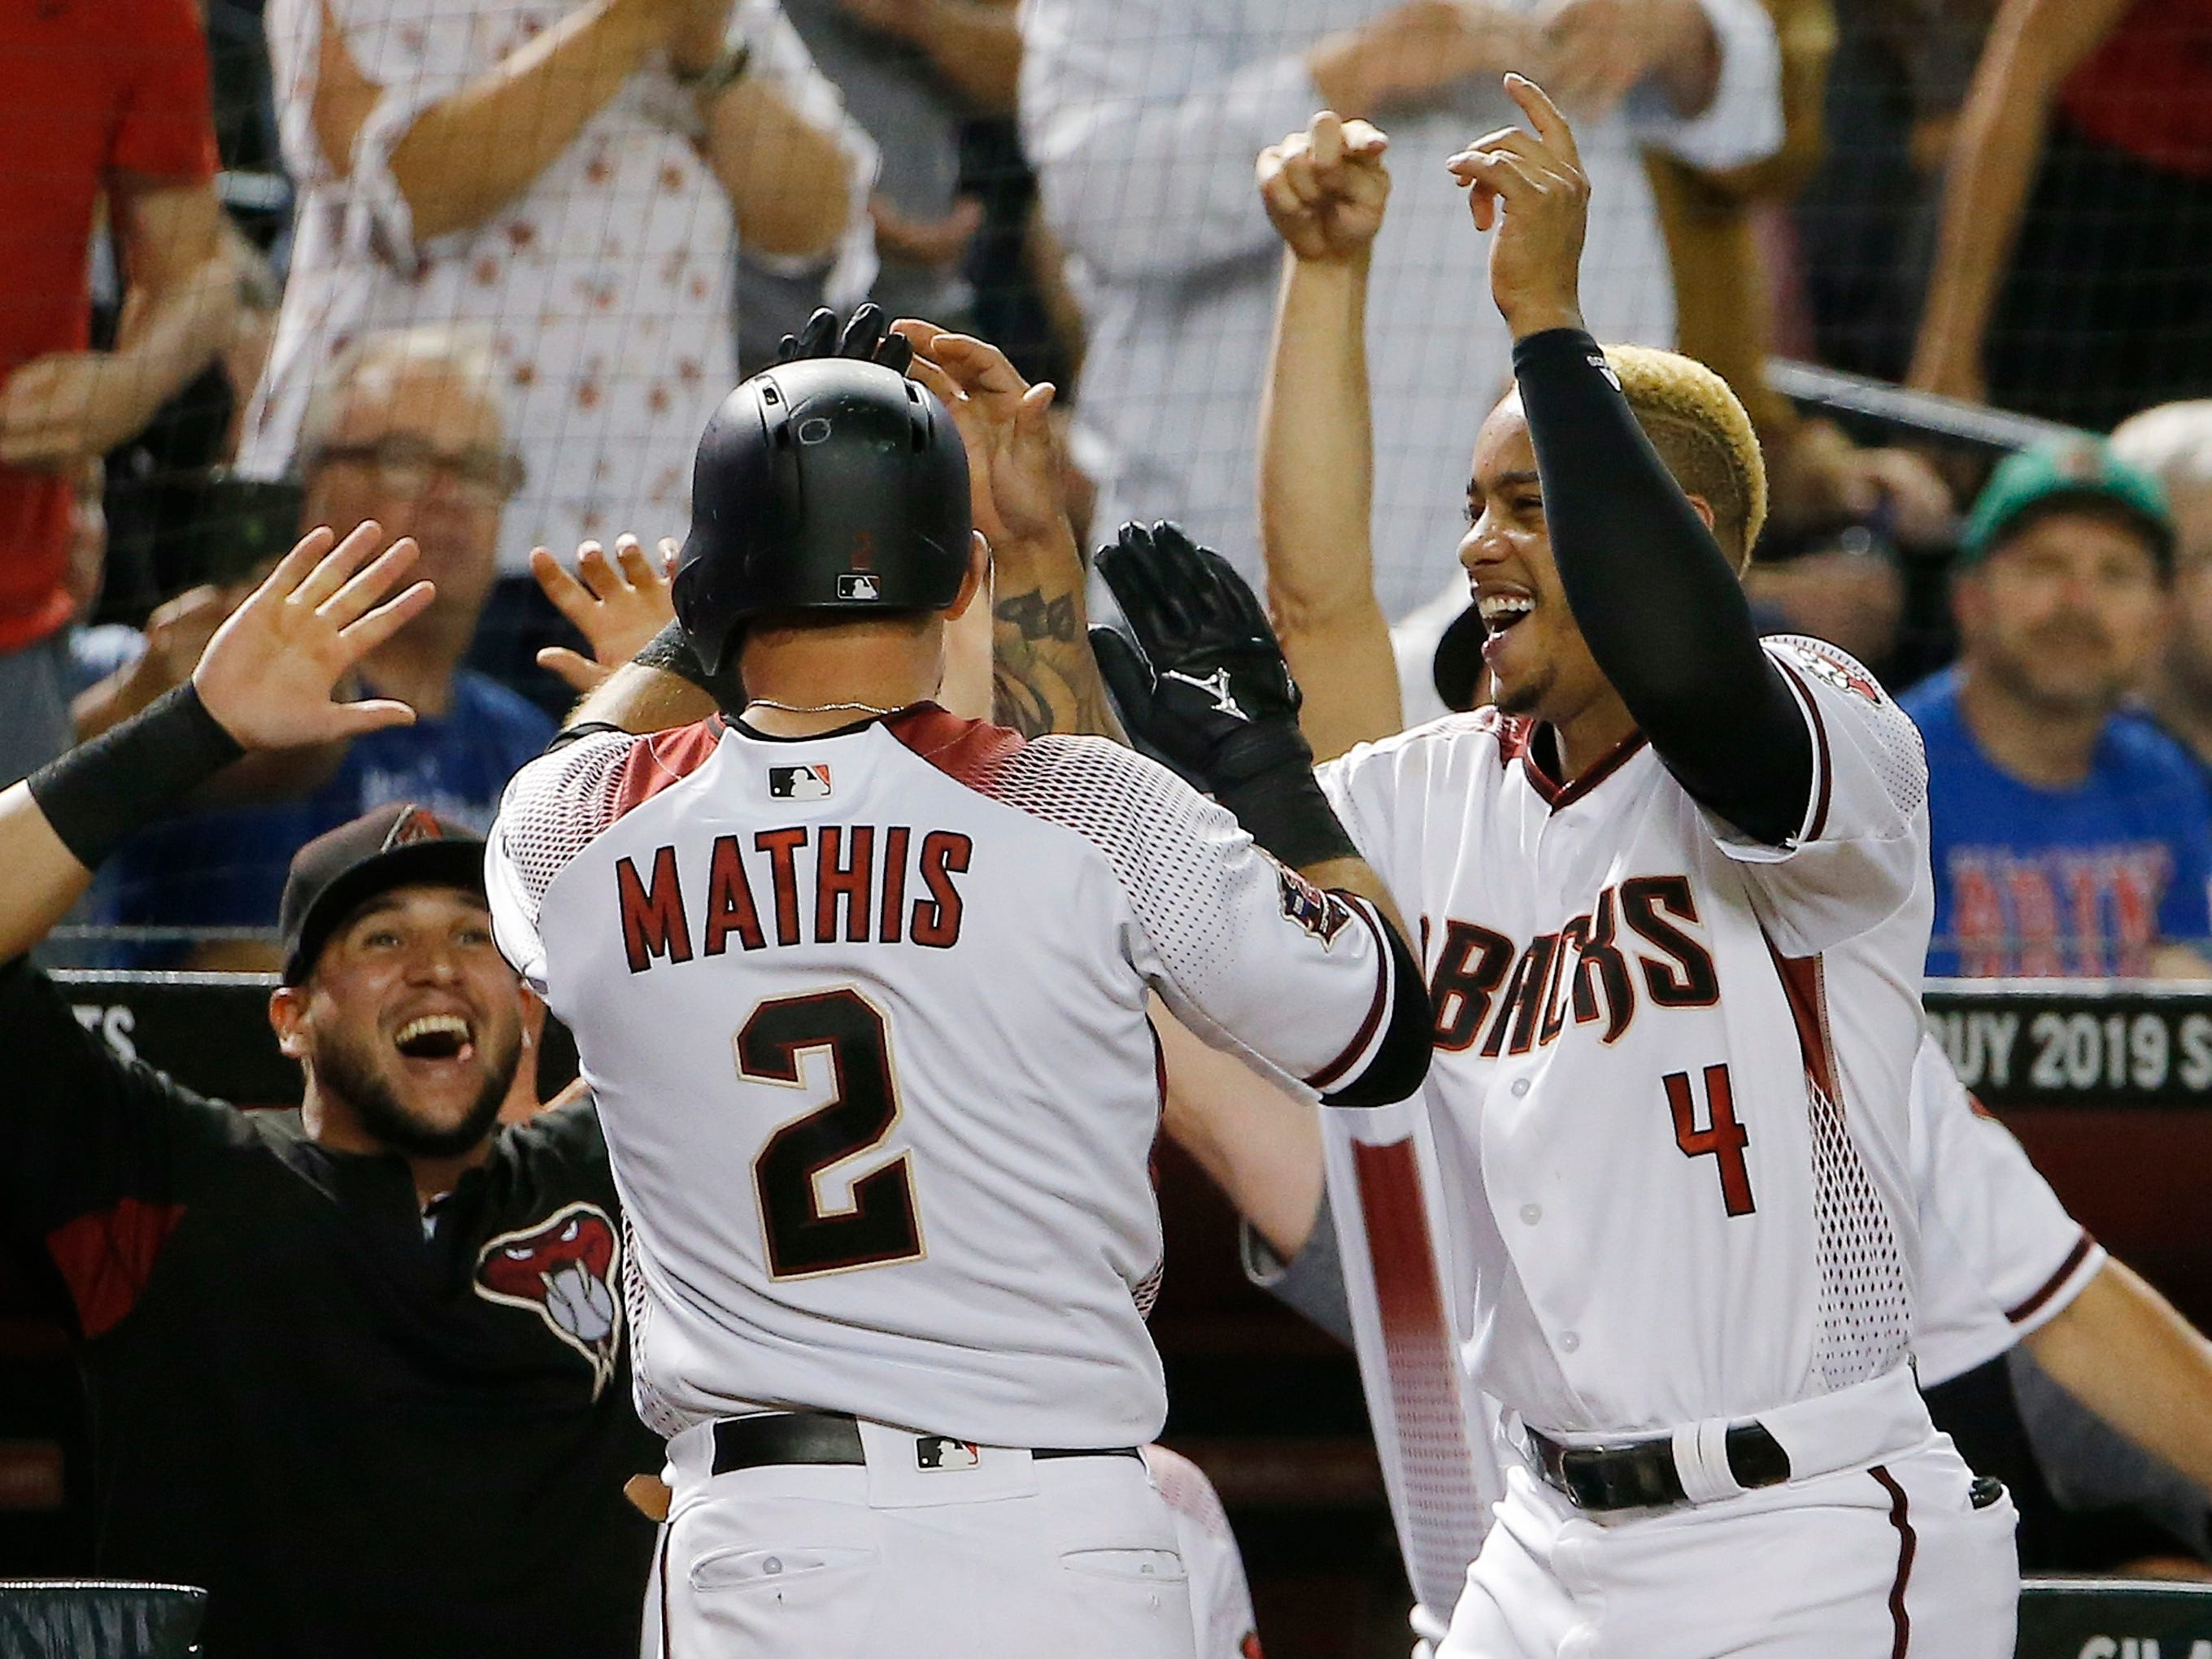 Arizona Diamondbacks' Jeff Mathis (2) celebrates his two-run home run against the Chicago Cubs with Ketel Marte (4) and David Peralta, left, during the eighth inning of a baseball game Wednesday, Sept. 19, 2018, in Phoenix. The Diamondbacks defeated the Cubs 9-0.